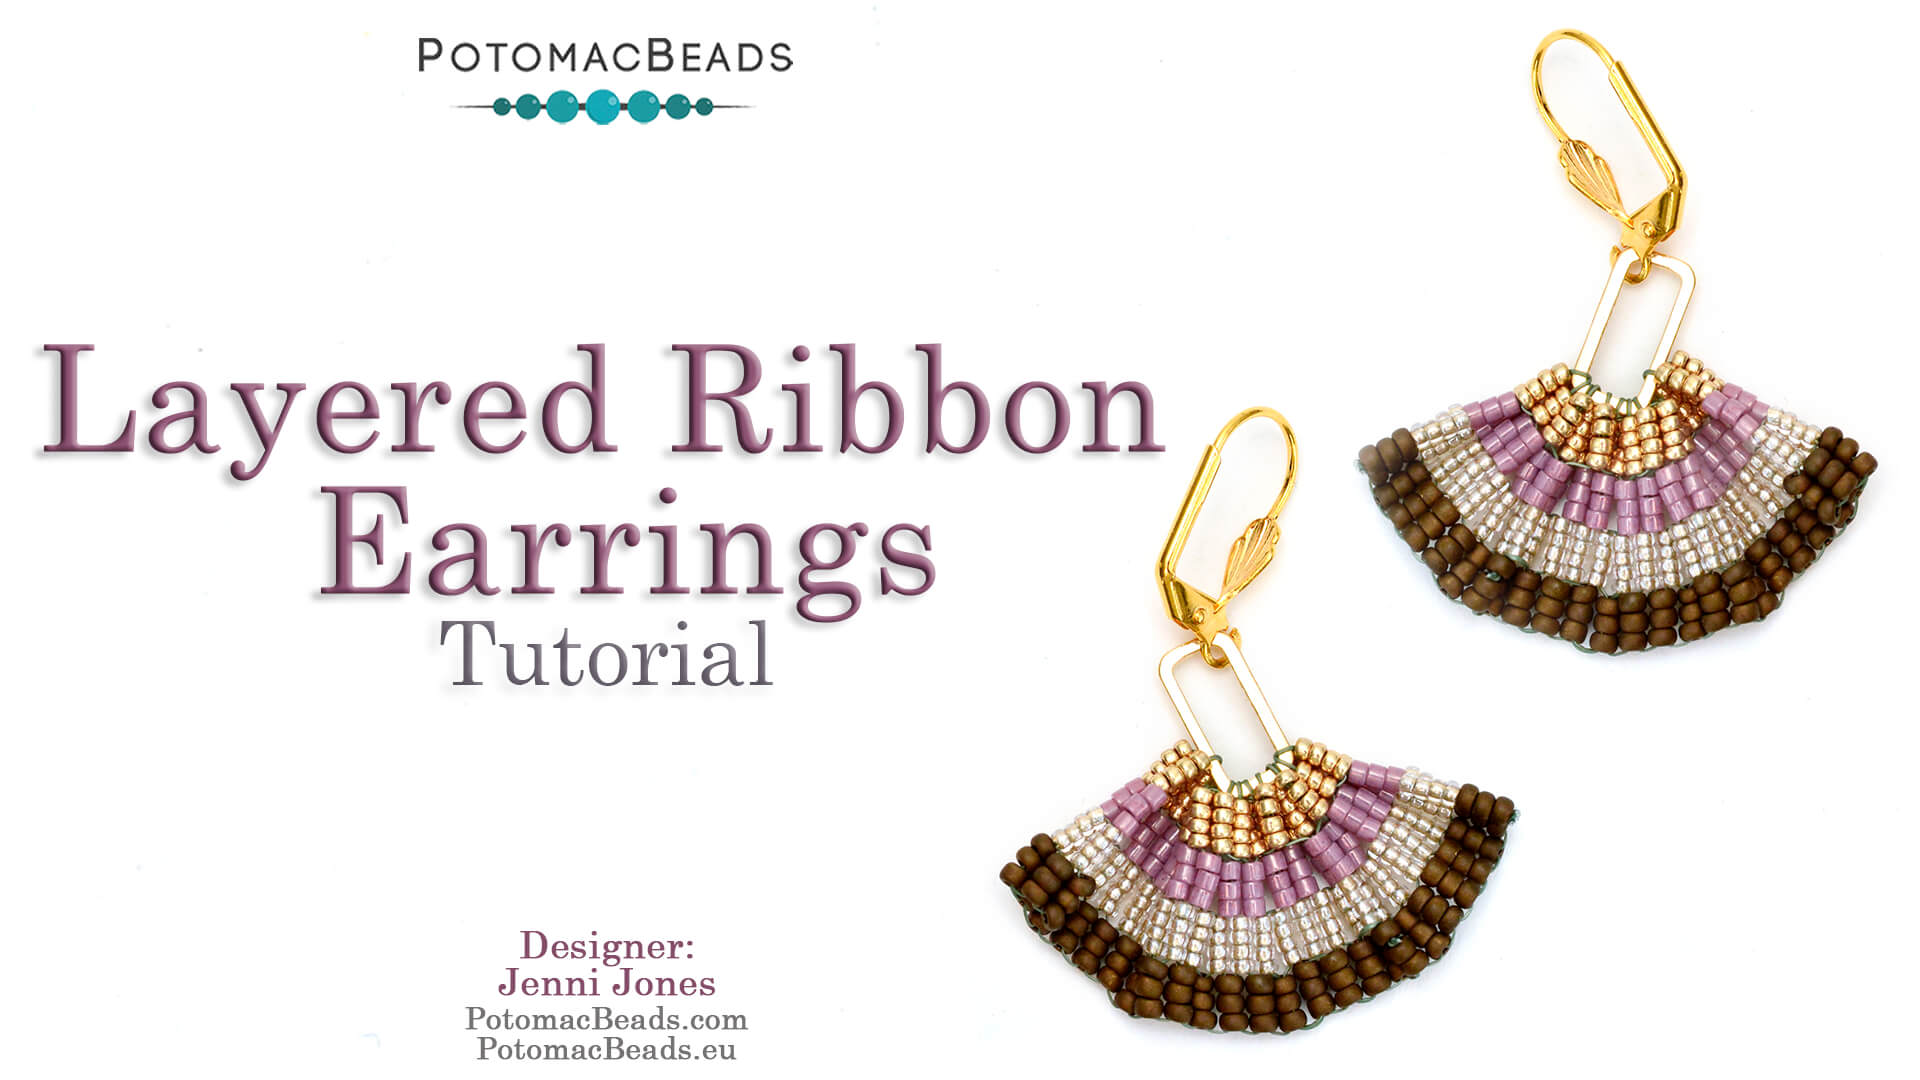 How to Bead Jewelry / Beading Tutorials & Jewel Making Videos / Earring Projects / Layered Ribbon Earrings Tutorial